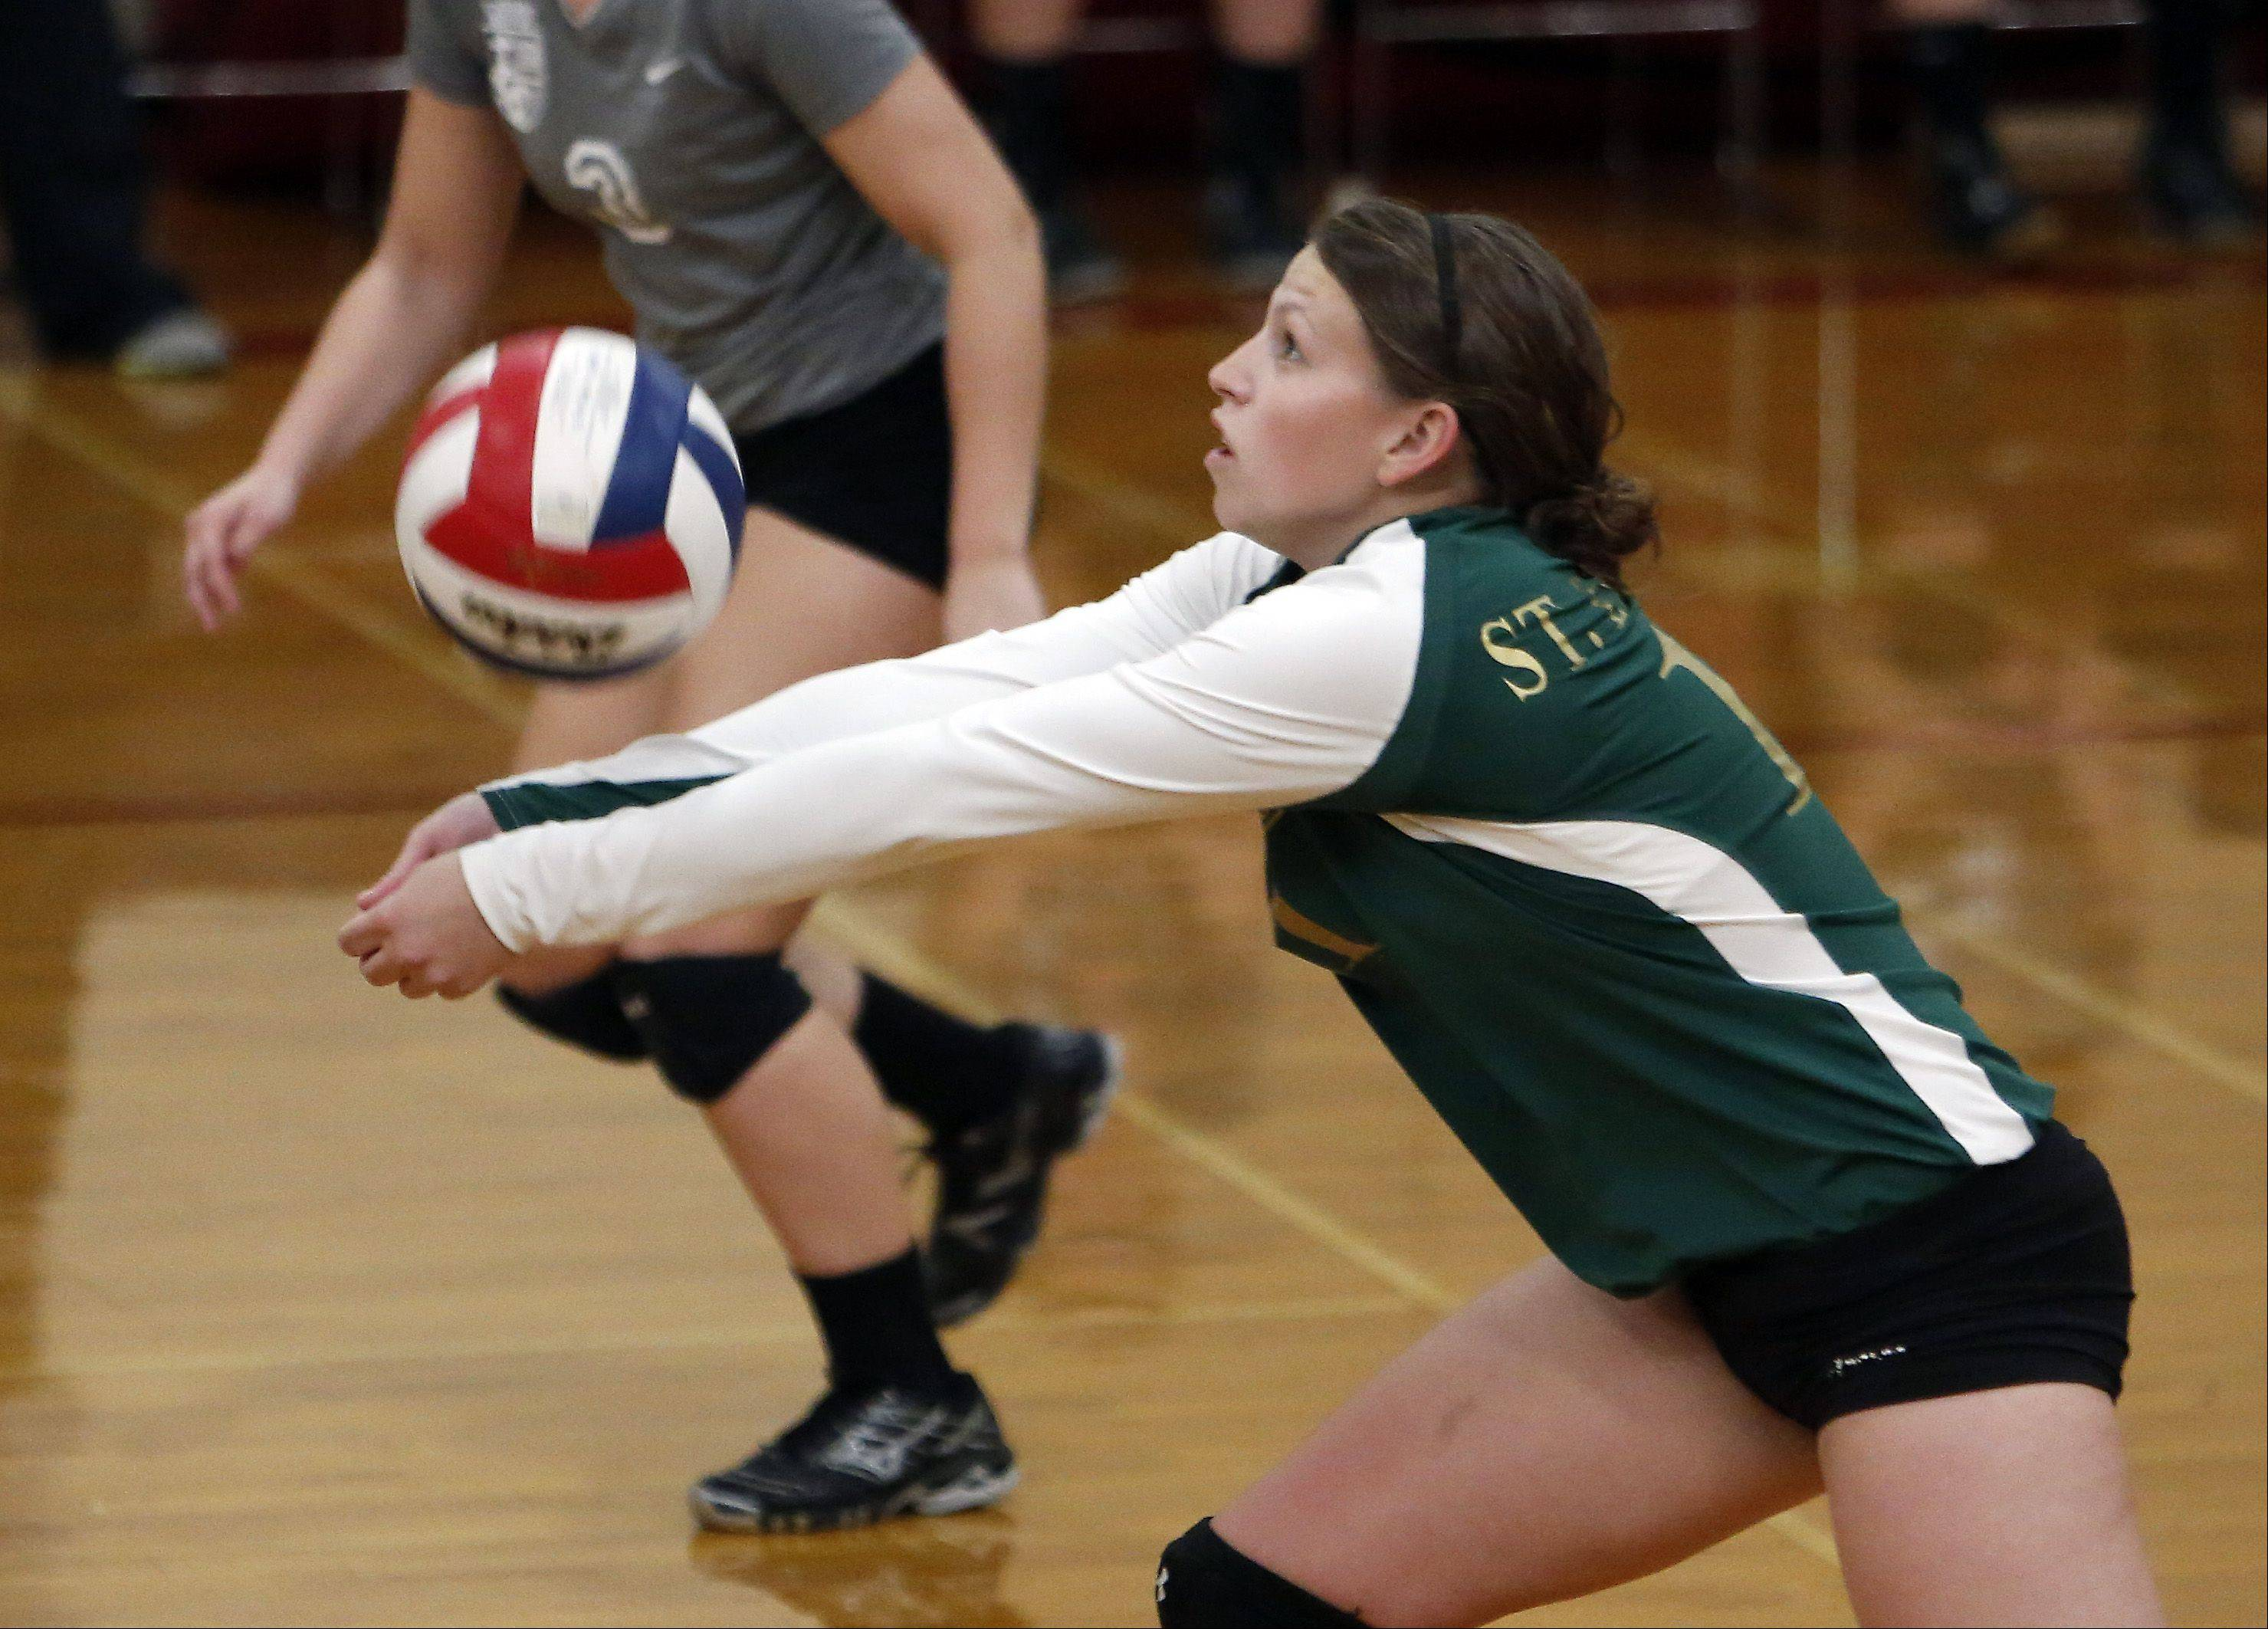 St. Edward's Katie Swanson returns a shot against Jacobs during the 29th Annual Huntley High School Volleyball Tournament Saturday.